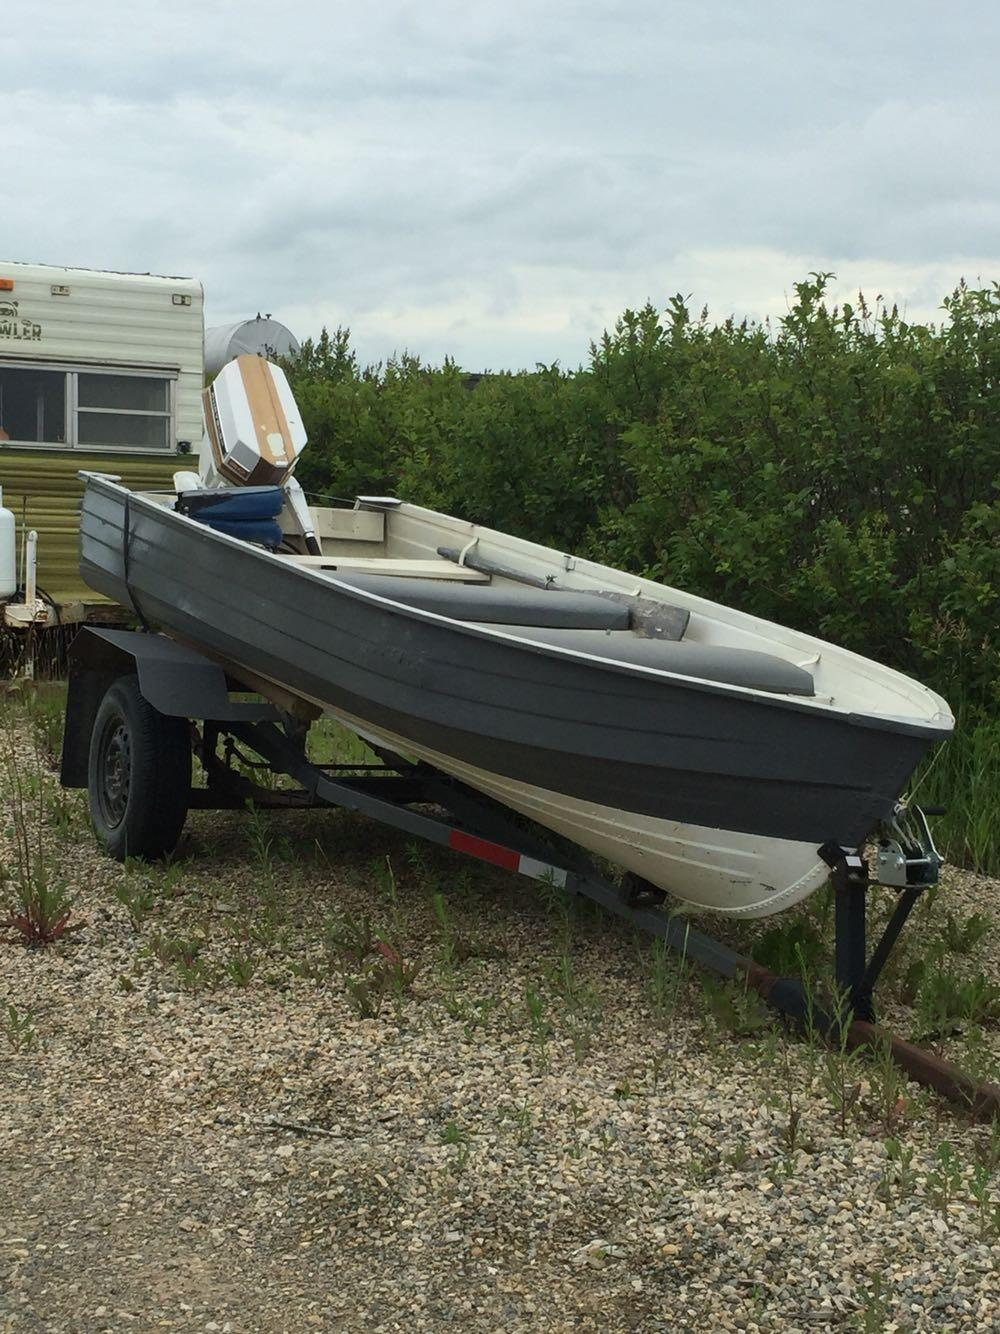 Find More 13 Ft Aluminum Boat For Sale At Up To 90 Off